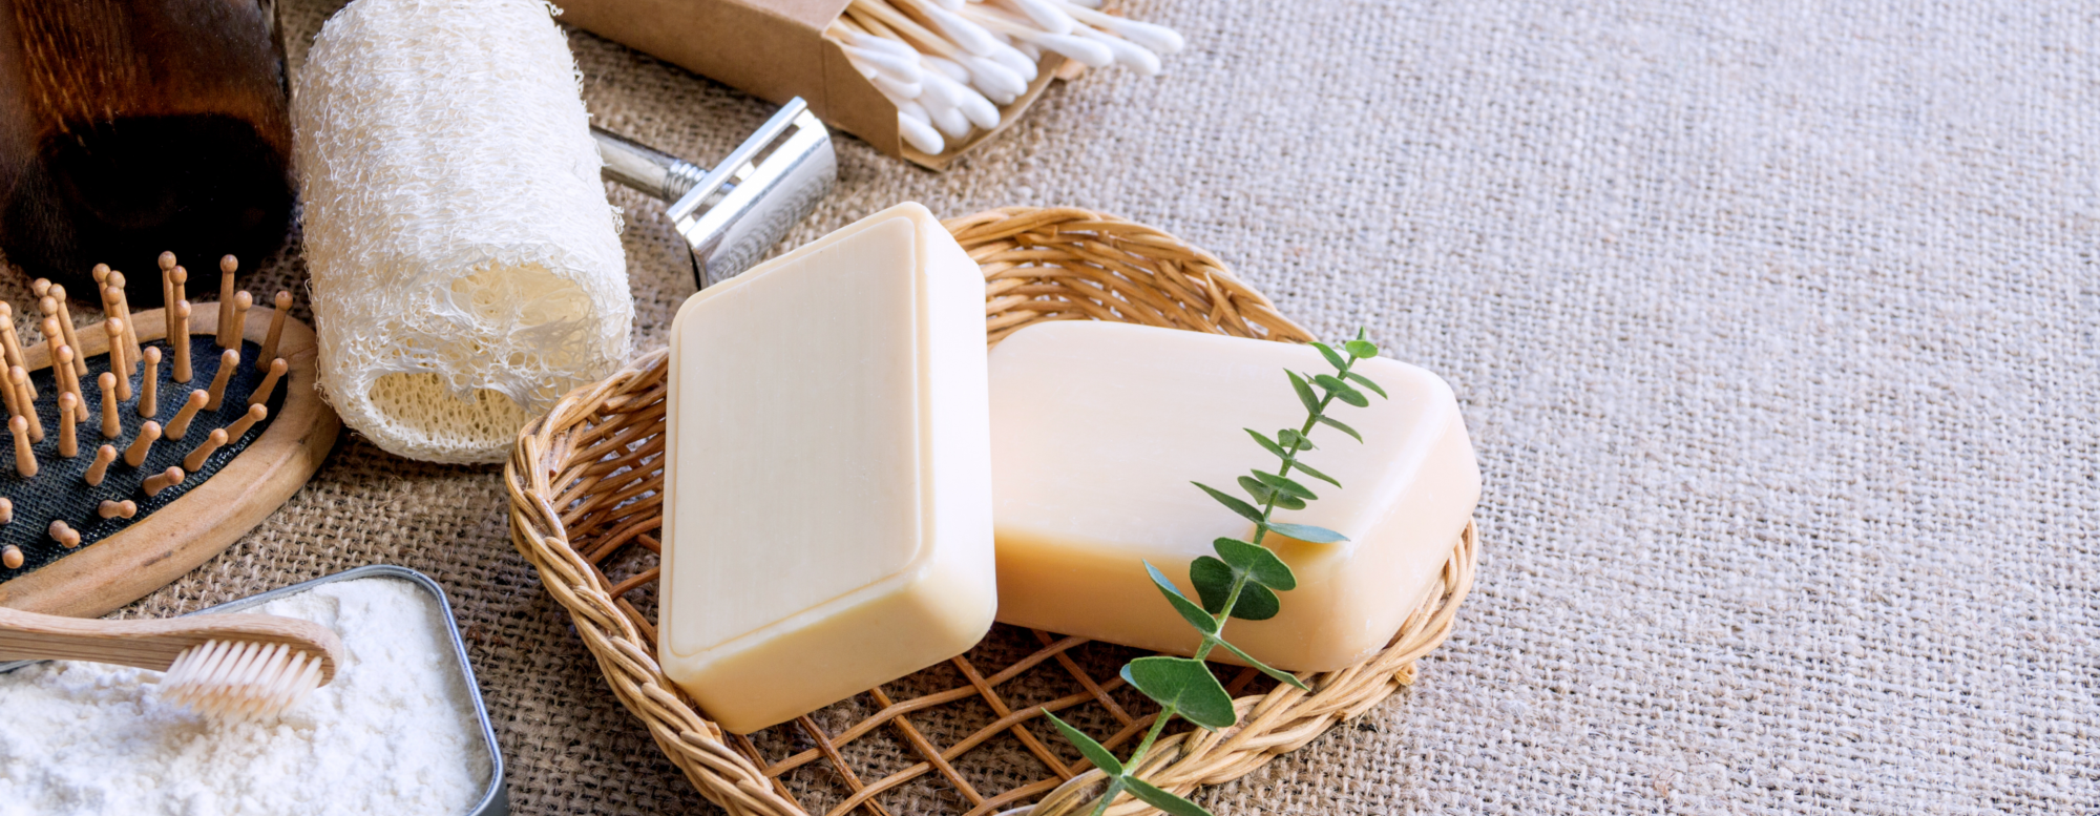 A range of plastic-free household products such as soap, cotton wool buds, and toothbrushes